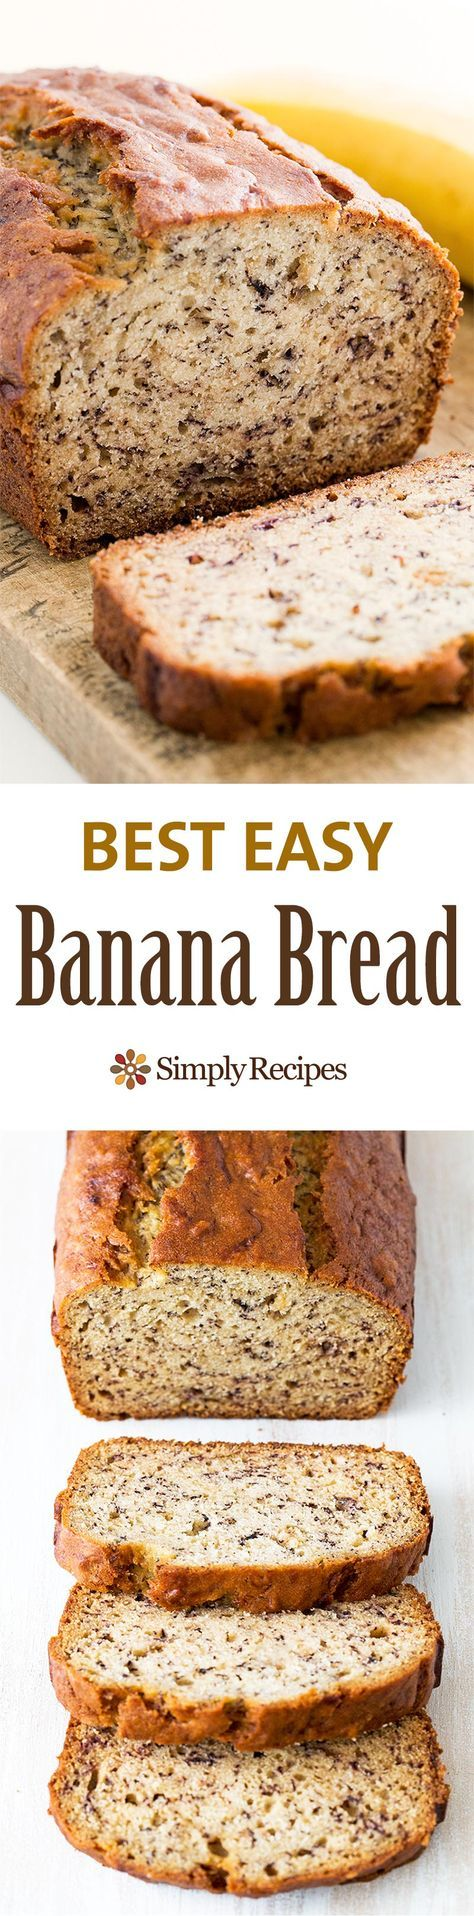 Easiest banana bread ever! No need for a mixer! Delicious and easy, classic banana bread recipe. Most popular recipe on http://SimplyRecipes.com Perfect for #MothersDay!